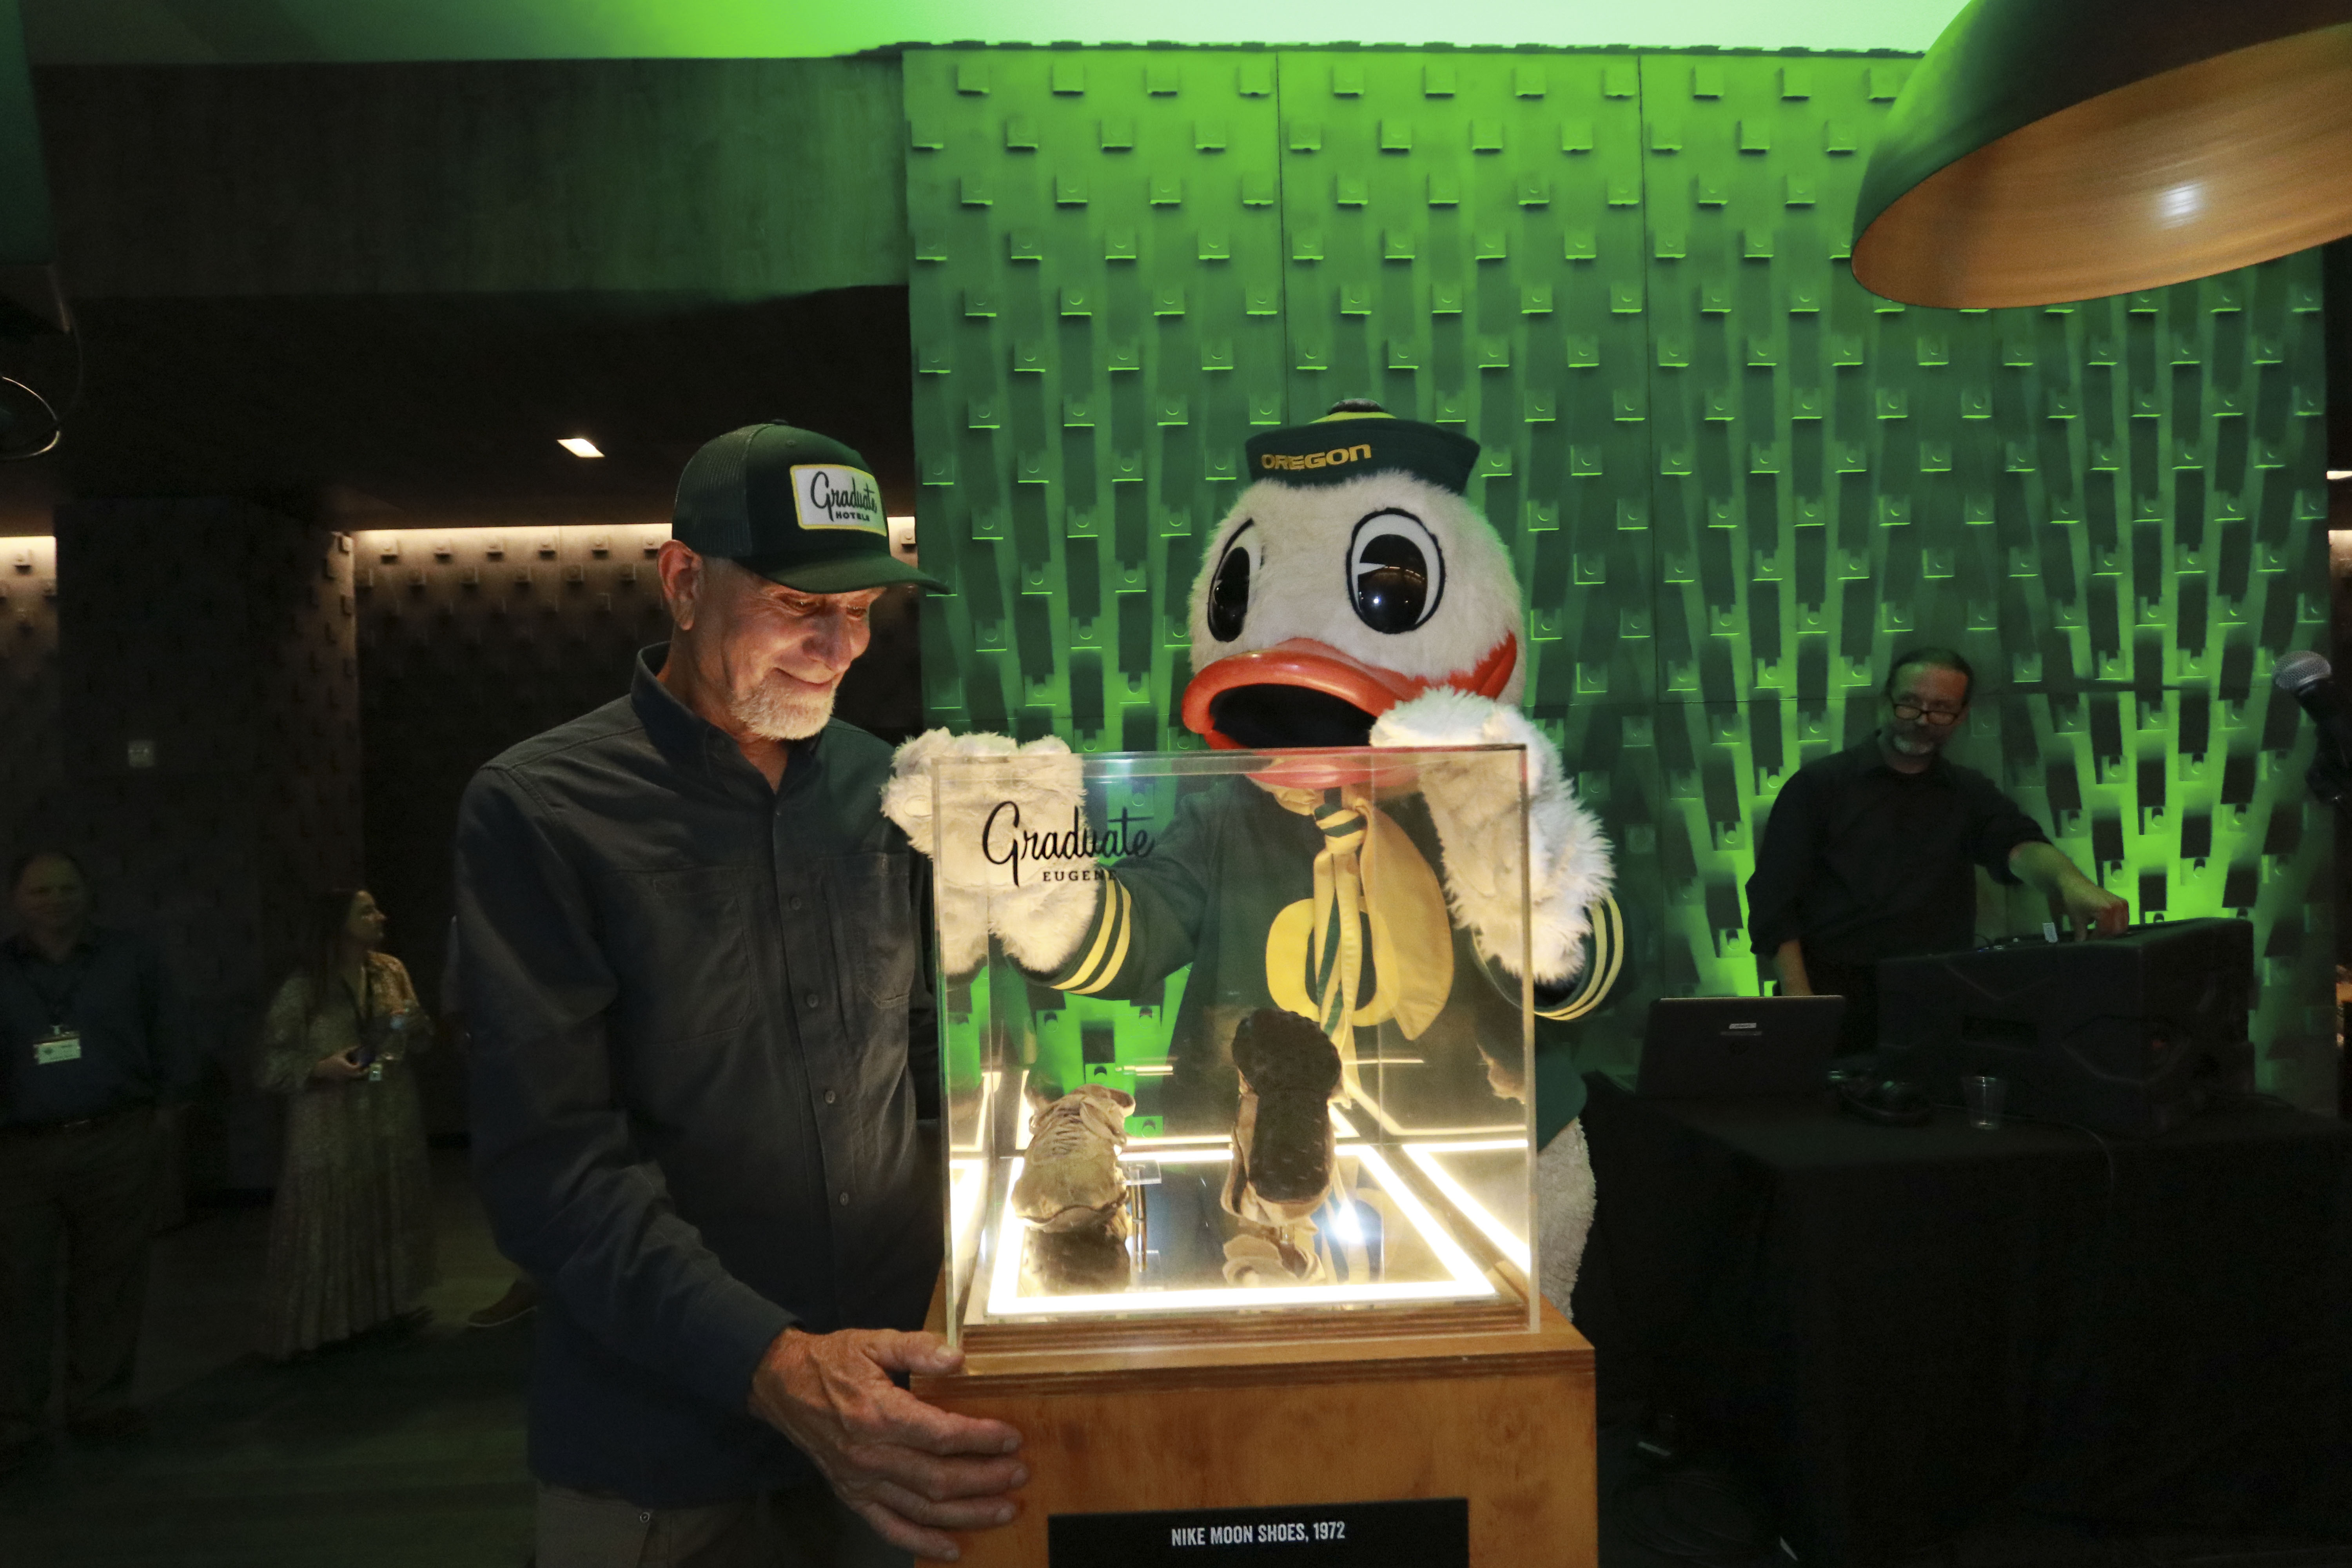 David Russell and the Oregon Duck unveil the Moon Shoes during an event at Graduate Eugene.